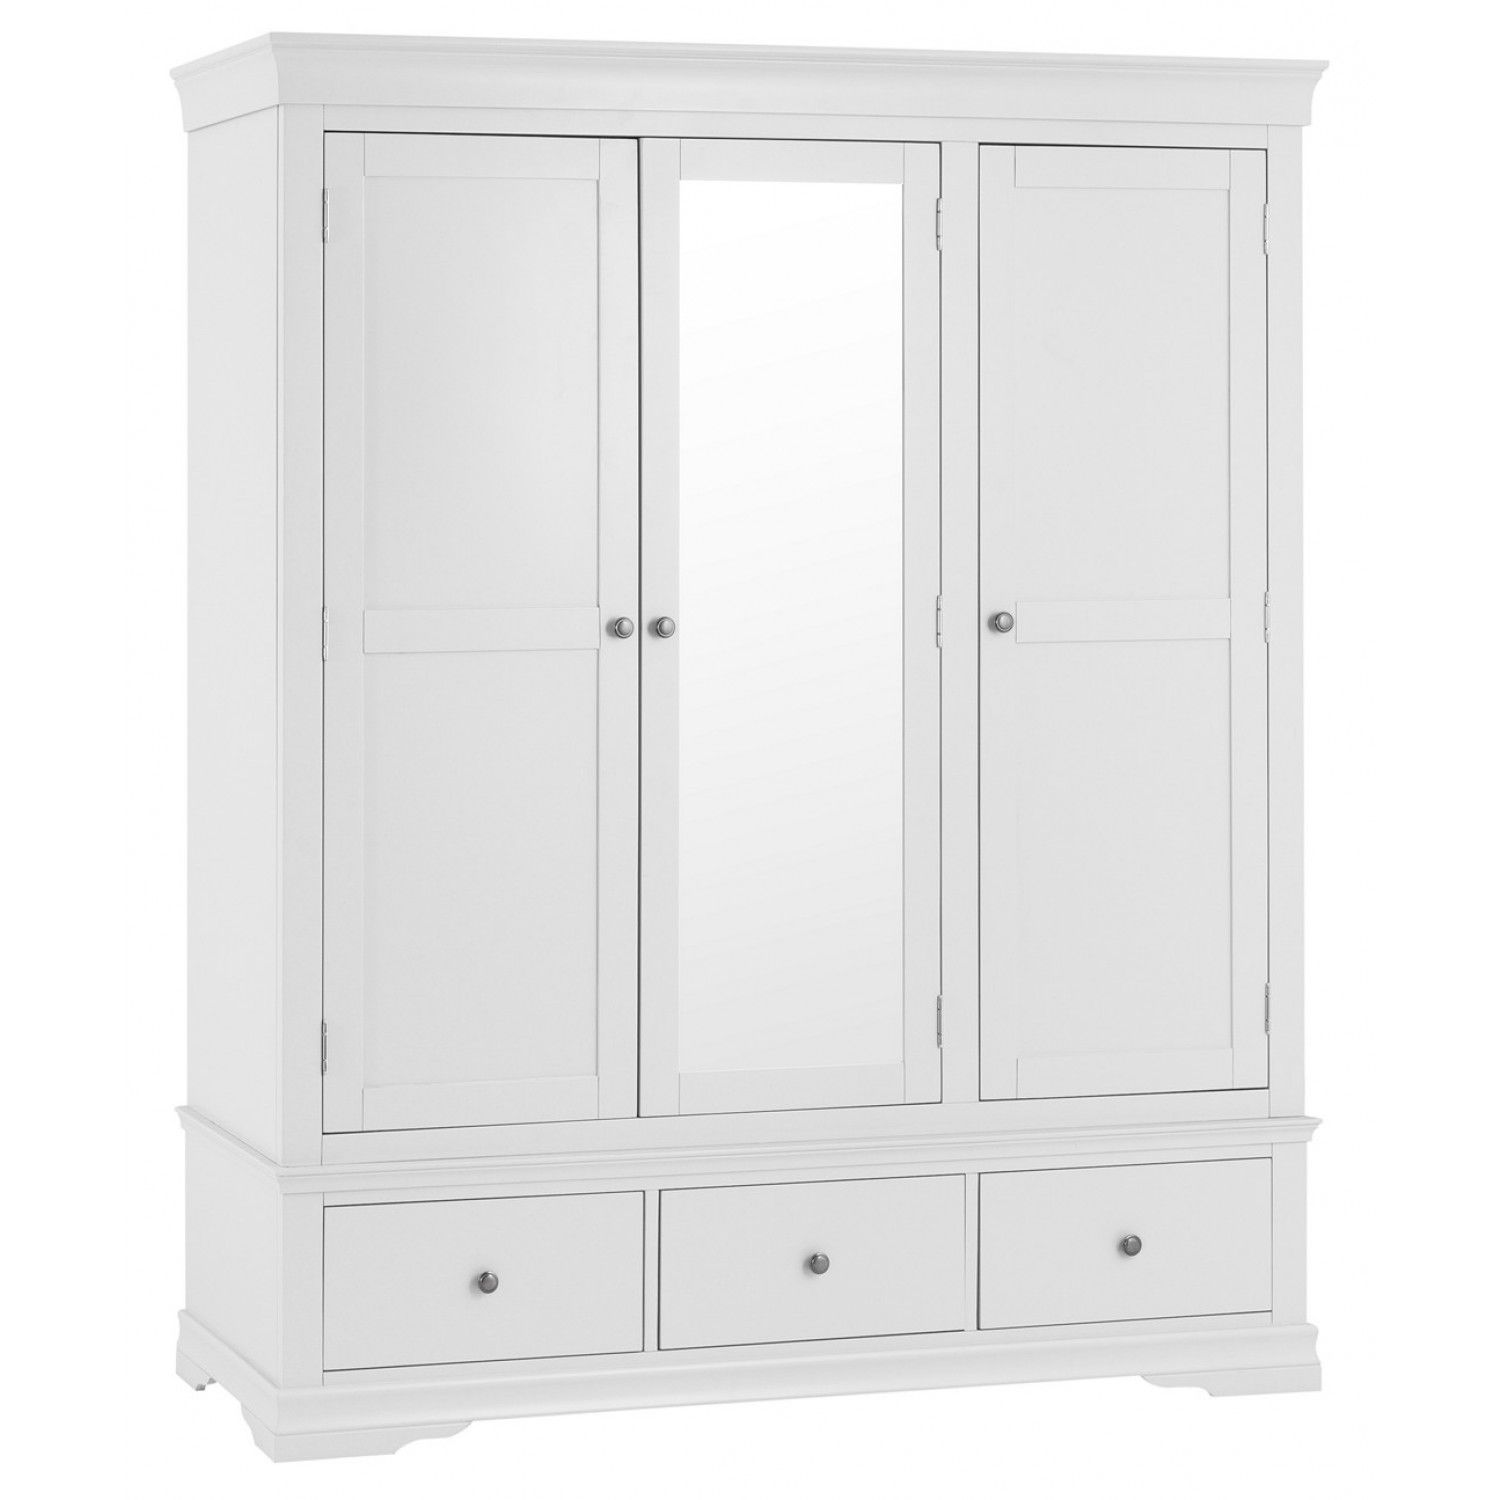 This Bonsoni Classic White 3 Door 2 Drawer Wardrobe Has 3 Handy Drawers With Wooden White Painted Furniture White Painted Bedroom Furniture Wardrobe Dimensions